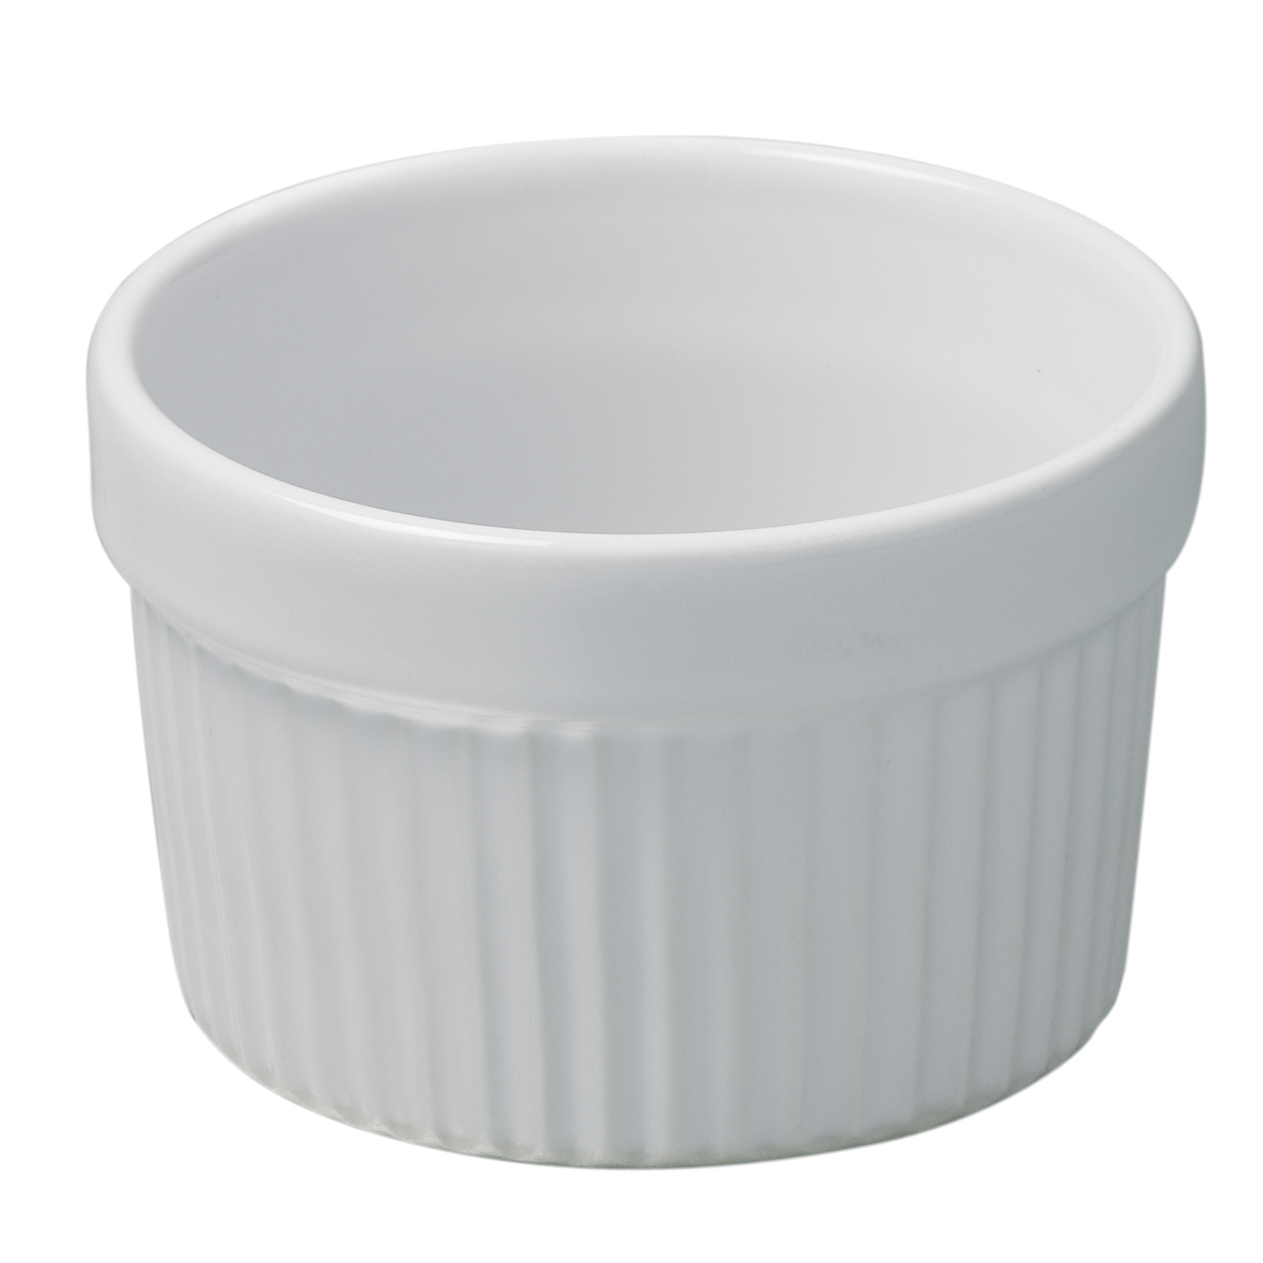 Revol French Classique White Porcelain 5.75 Ounce Ramekin